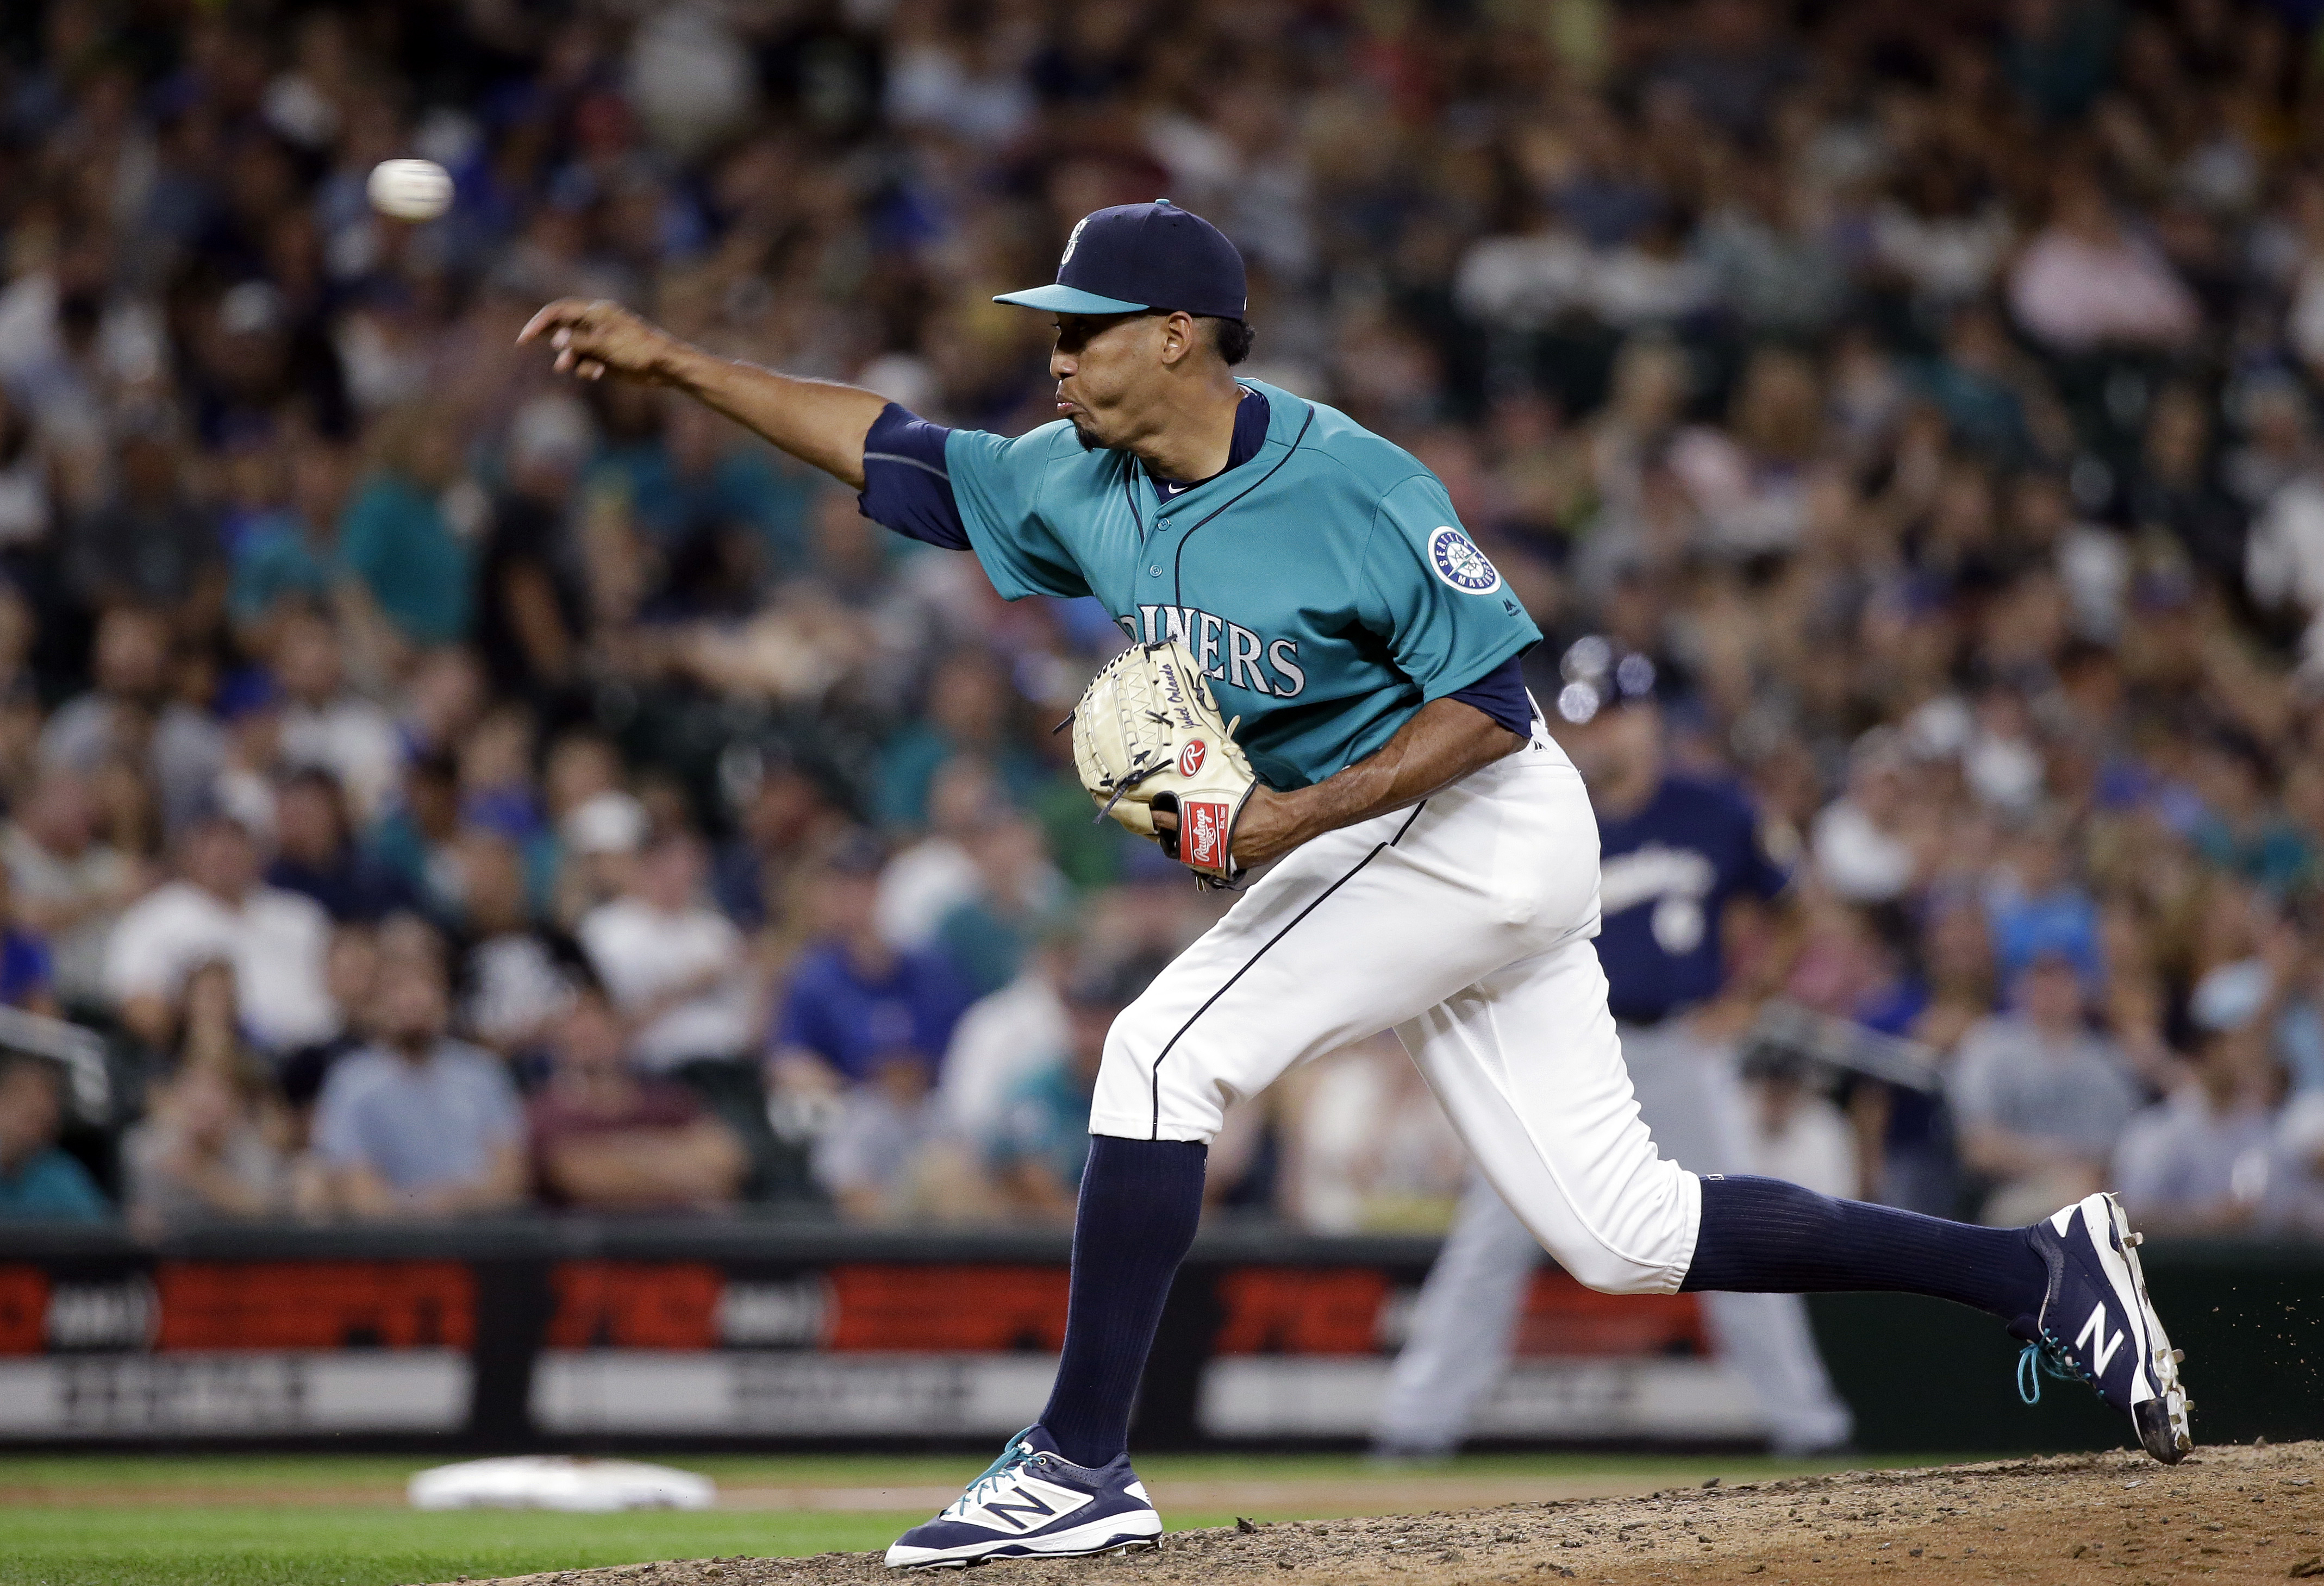 Seattle Mariners closing pitcher Edwin Diaz throws against the Milwaukee Brewers in the ninth inning of a baseball game Friday, Aug. 19, 2016, in Seattle. (AP Photo/Elaine Thompson)